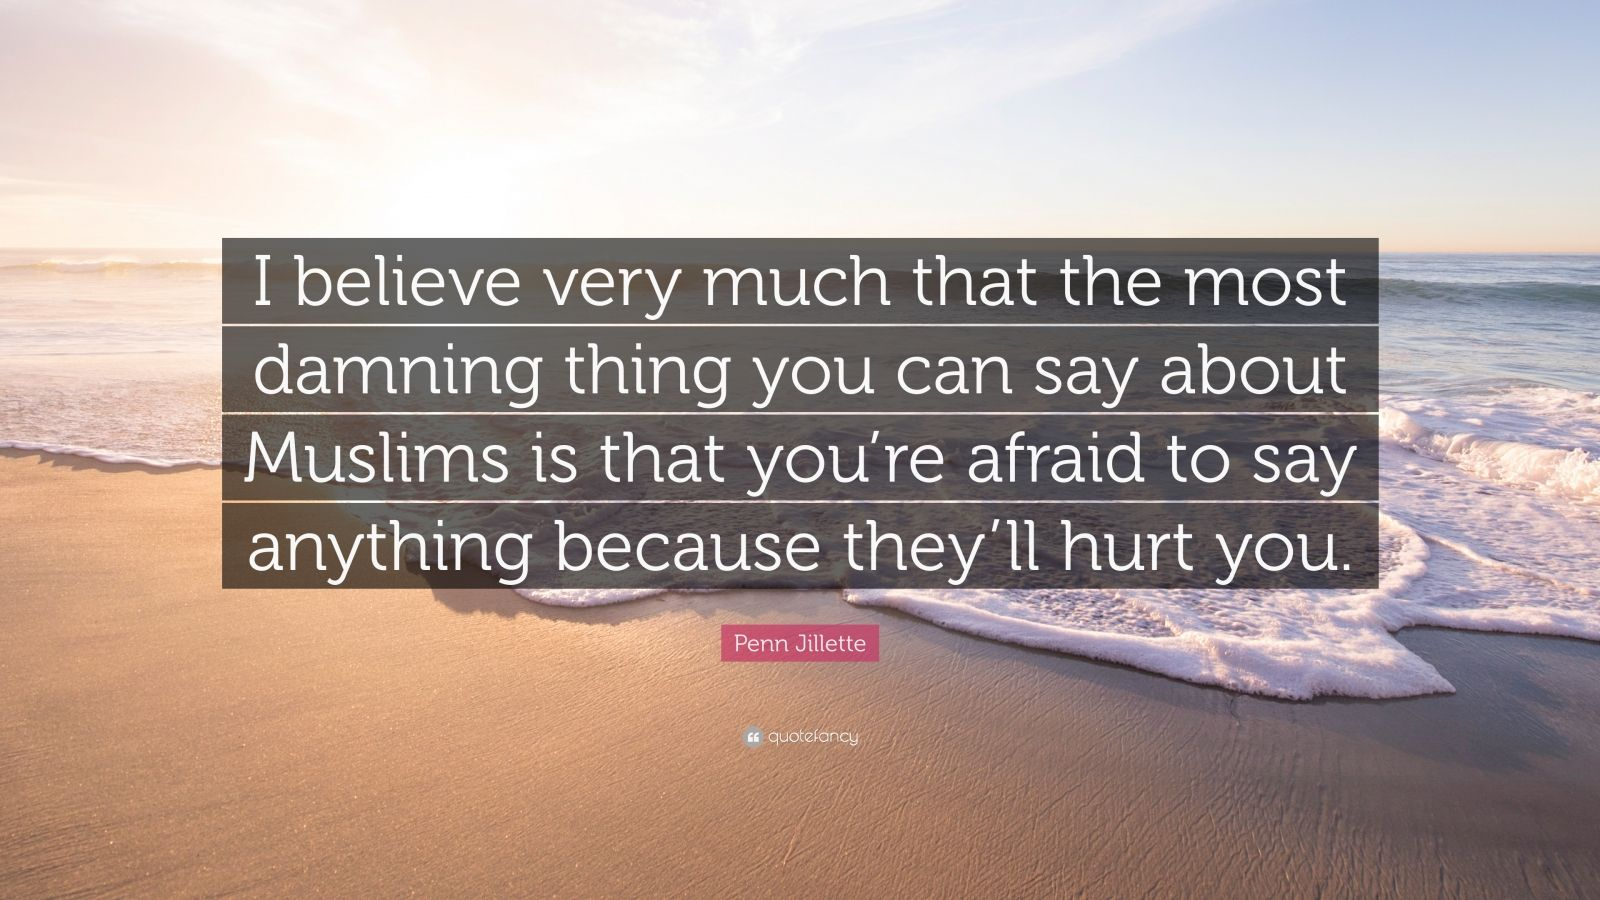 "Penn Jillette Quote: ""I believe very much that the most damning thing you can say about Muslims is that you're afraid to say anything because they'll hurt you."""